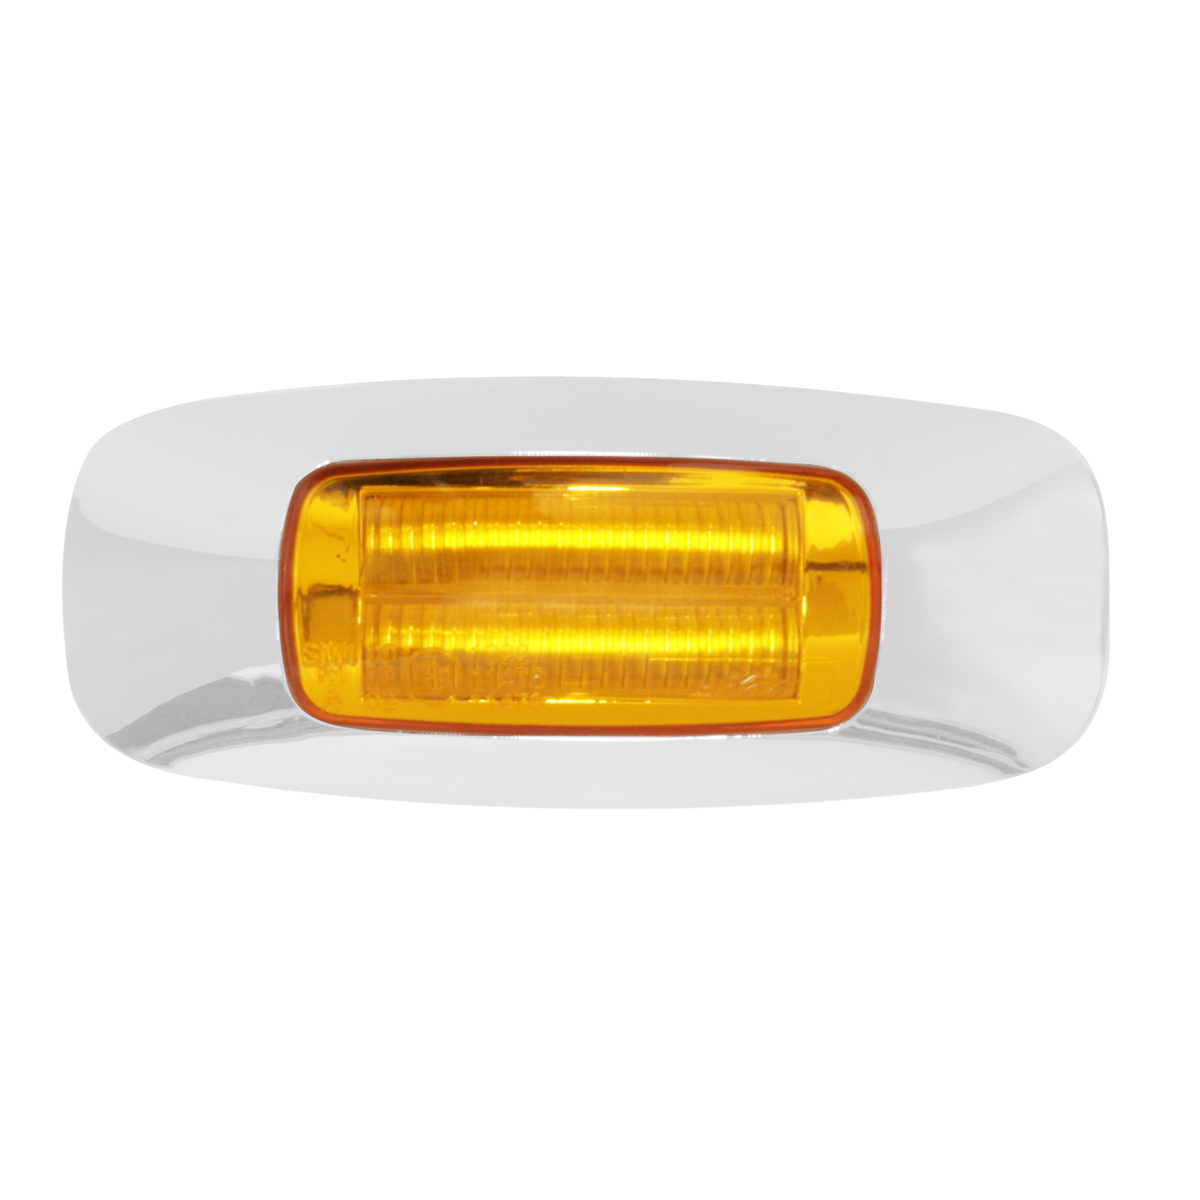 "74820 3.5"" Rectangular Prime LED Marker Light in Amber/Amber"